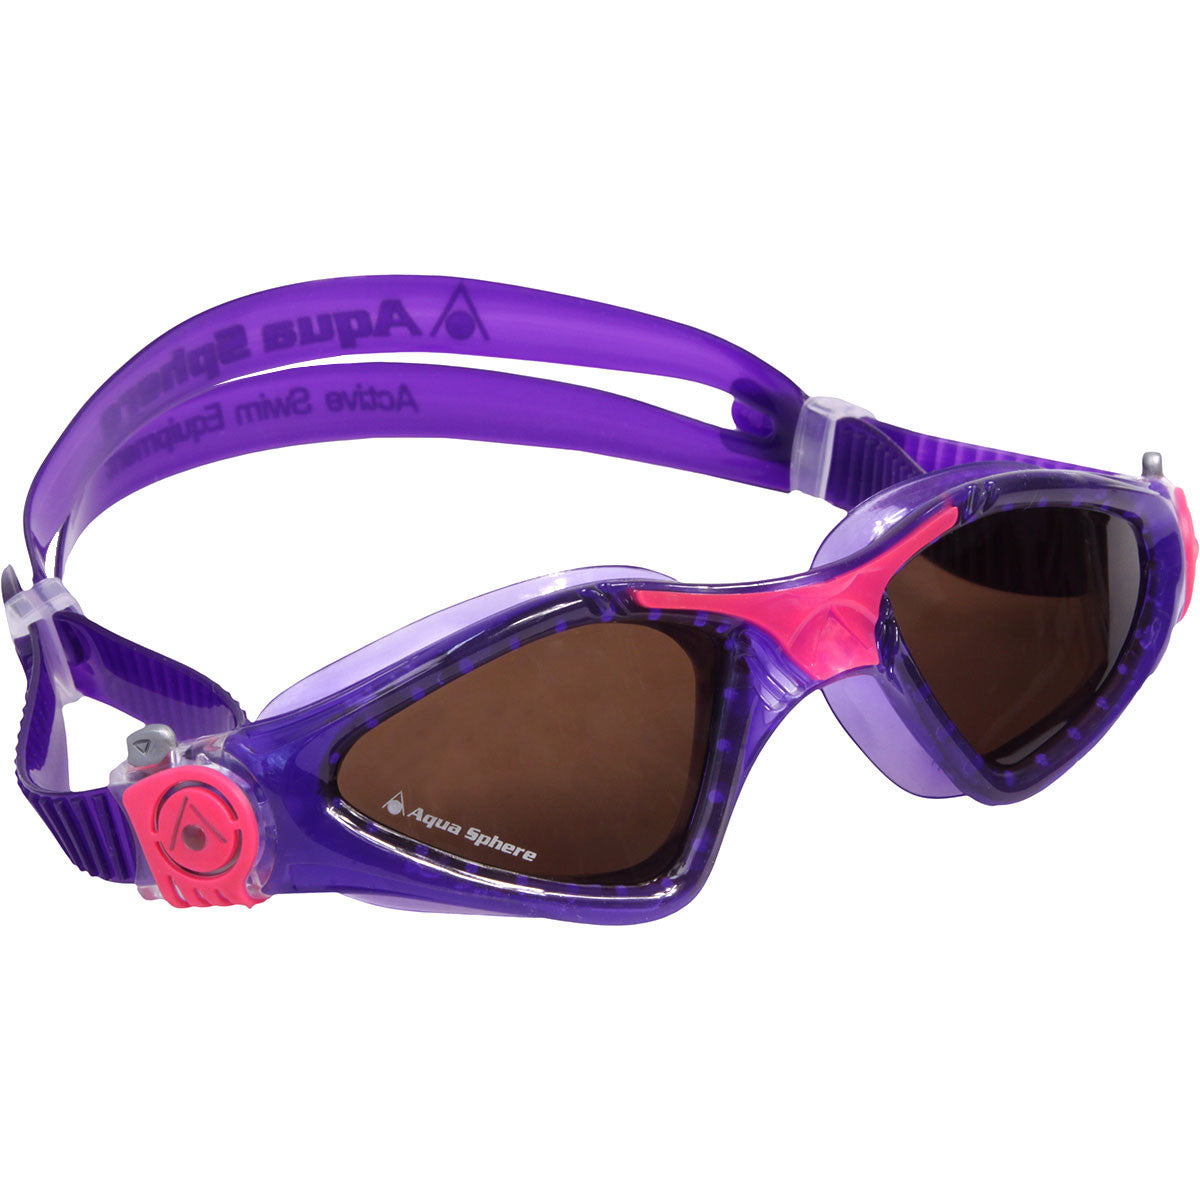 80a1813928 Aqua Sphere Kayenne Lady Goggle – all3sports